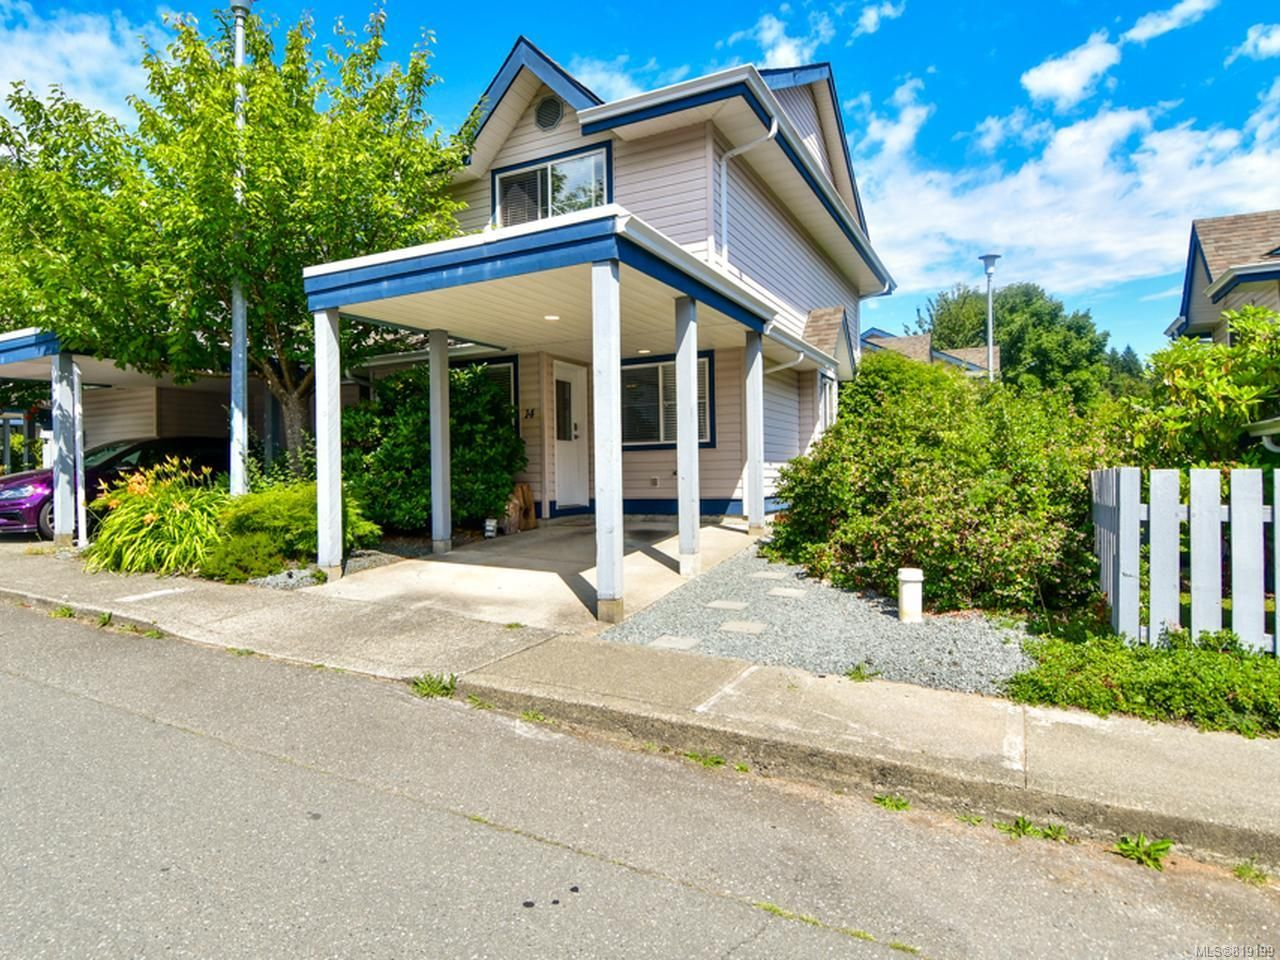 Main Photo: 14 1335 Creekside Way in CAMPBELL RIVER: CR Willow Point Row/Townhouse for sale (Campbell River)  : MLS®# 819199